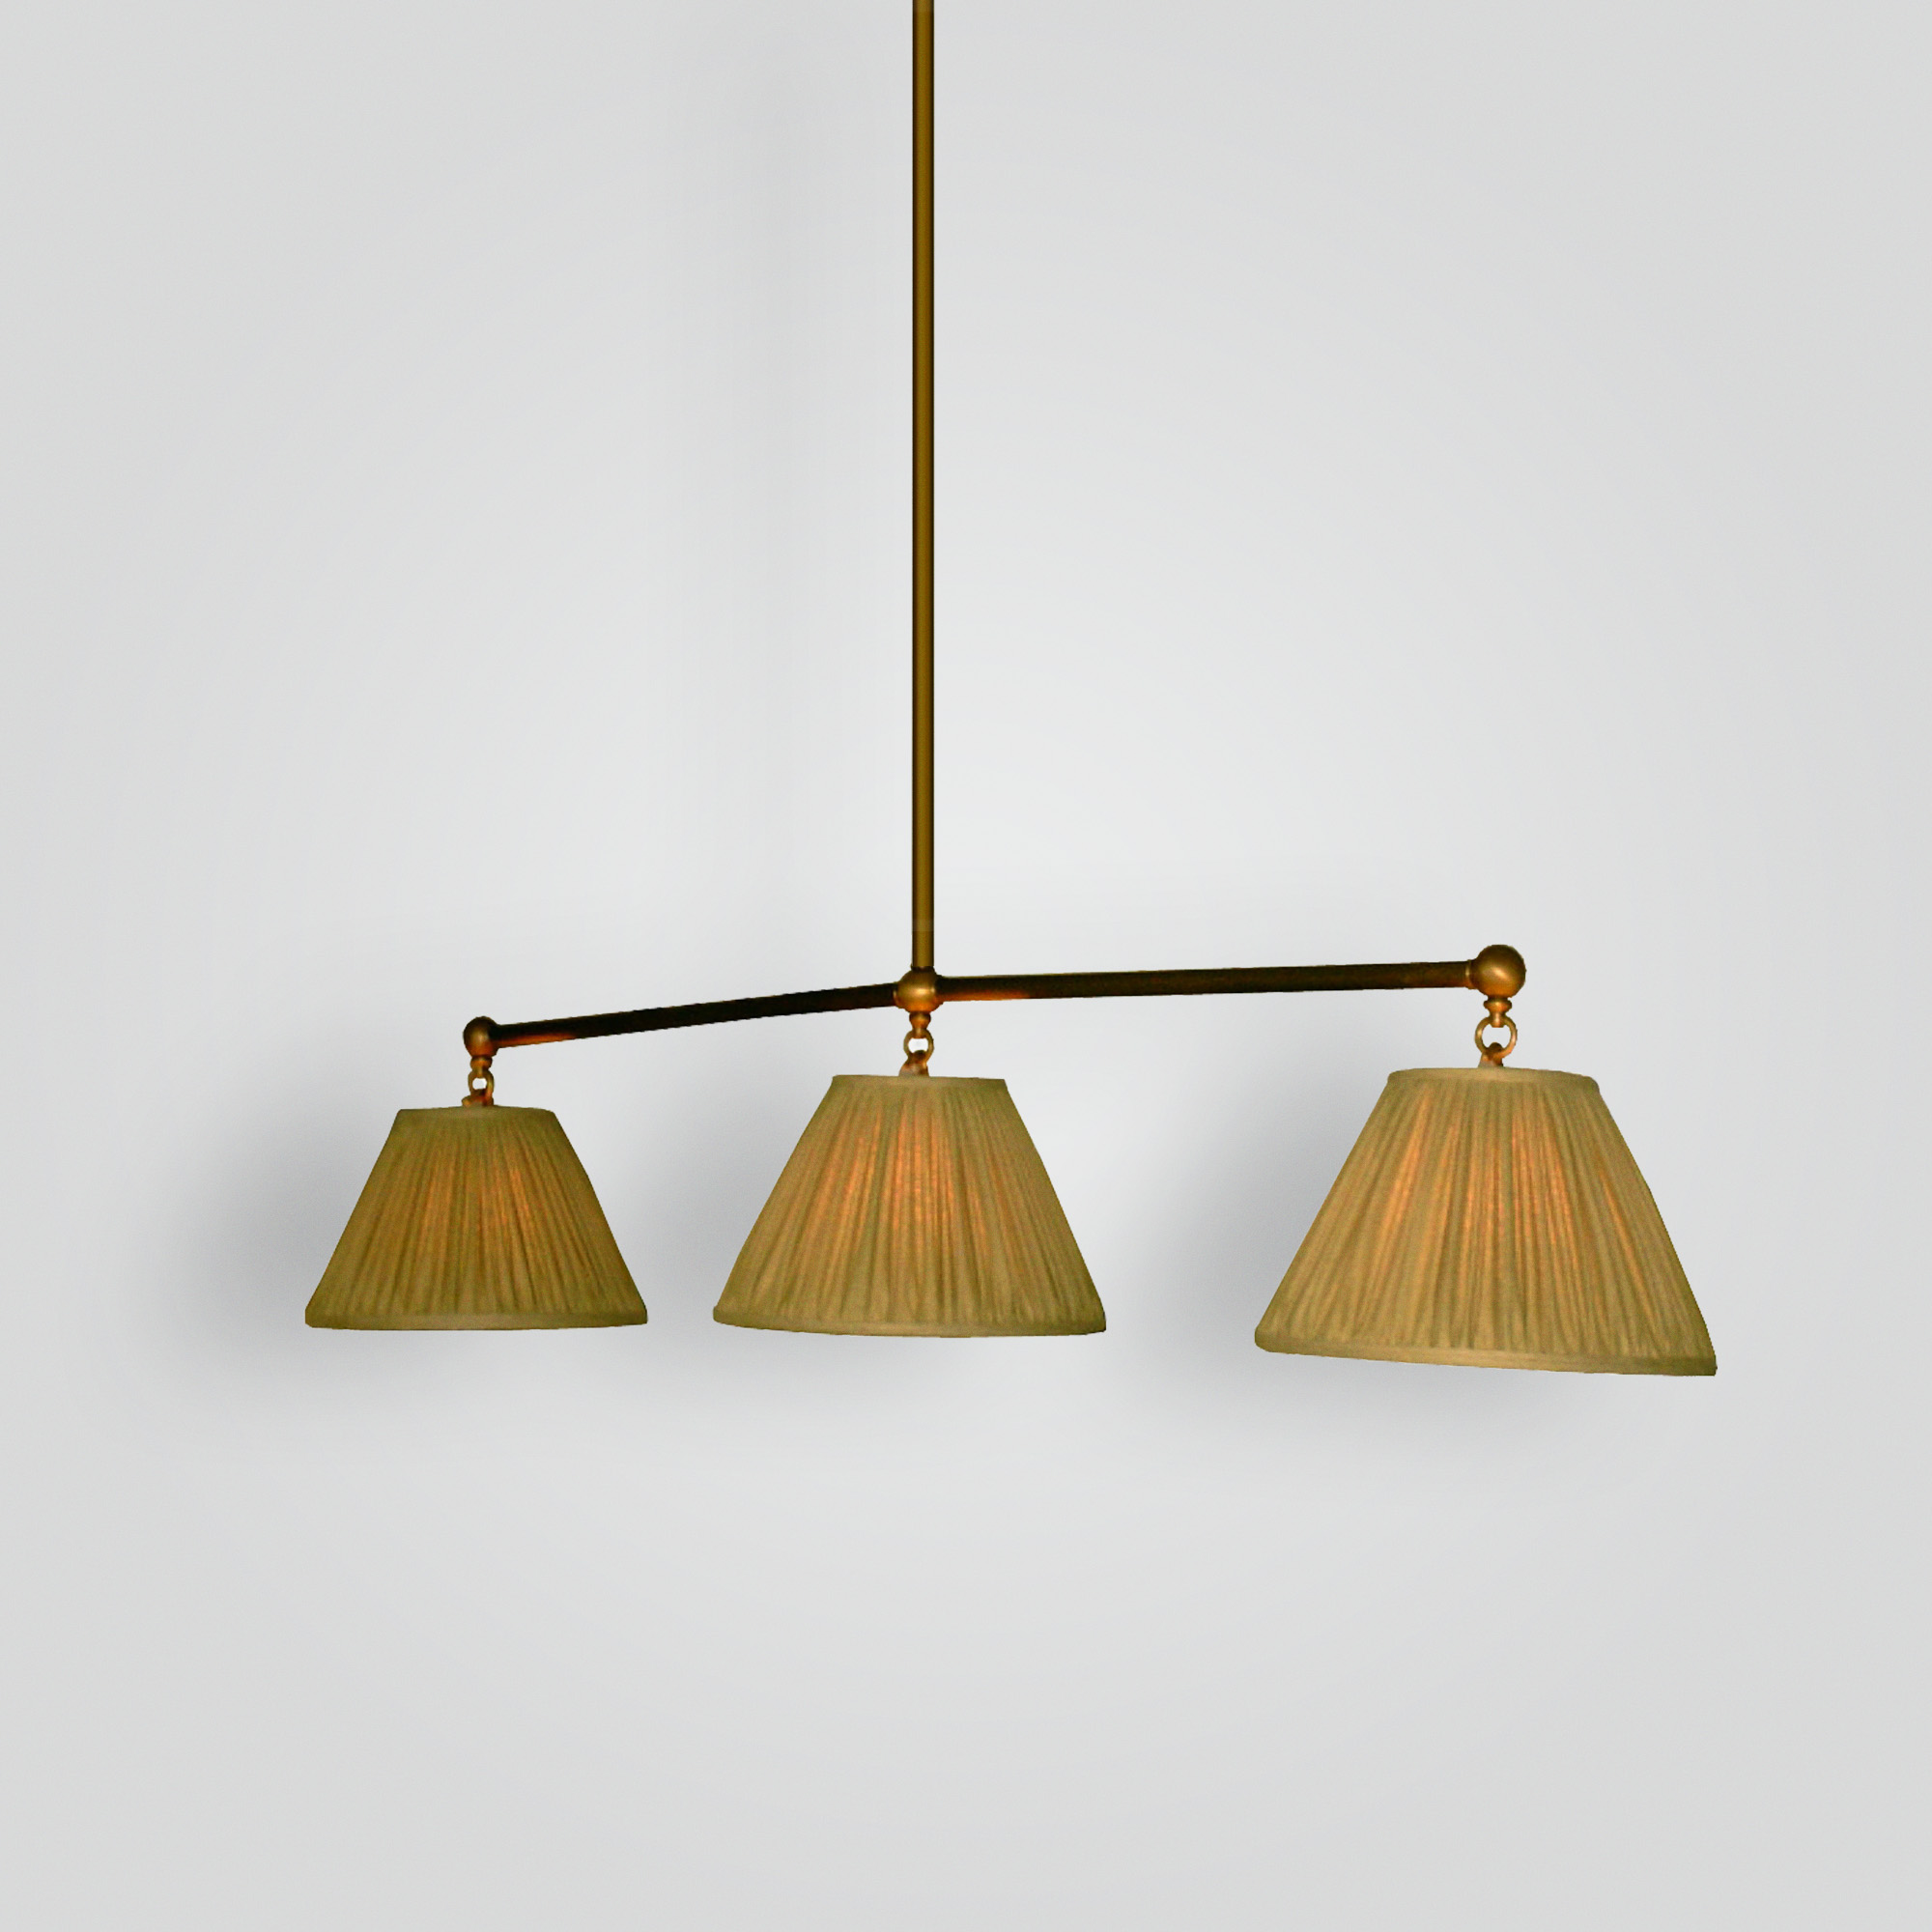 7398-mb3-br-h-ba Pool Table Light with Silk Shade – ADG Lighting Collection